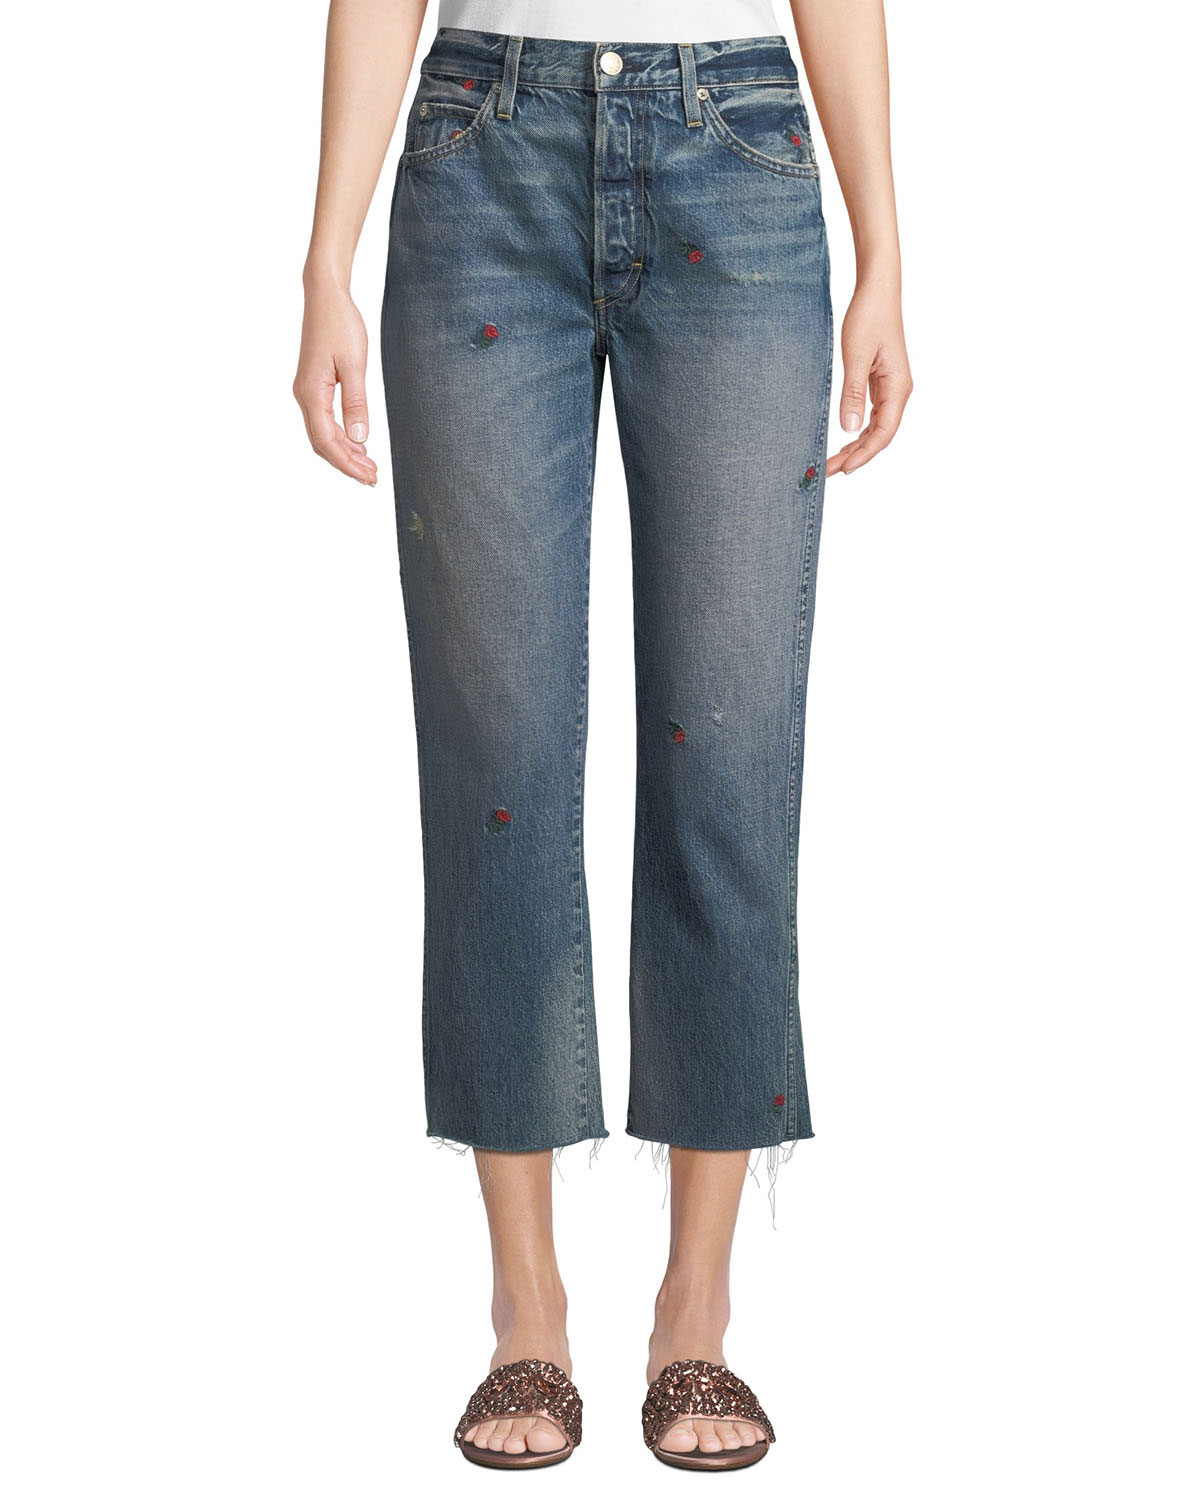 AMO DENIM Loverboy Embroidered Straight-Leg Cropped Jeans in Rosebud Embroid